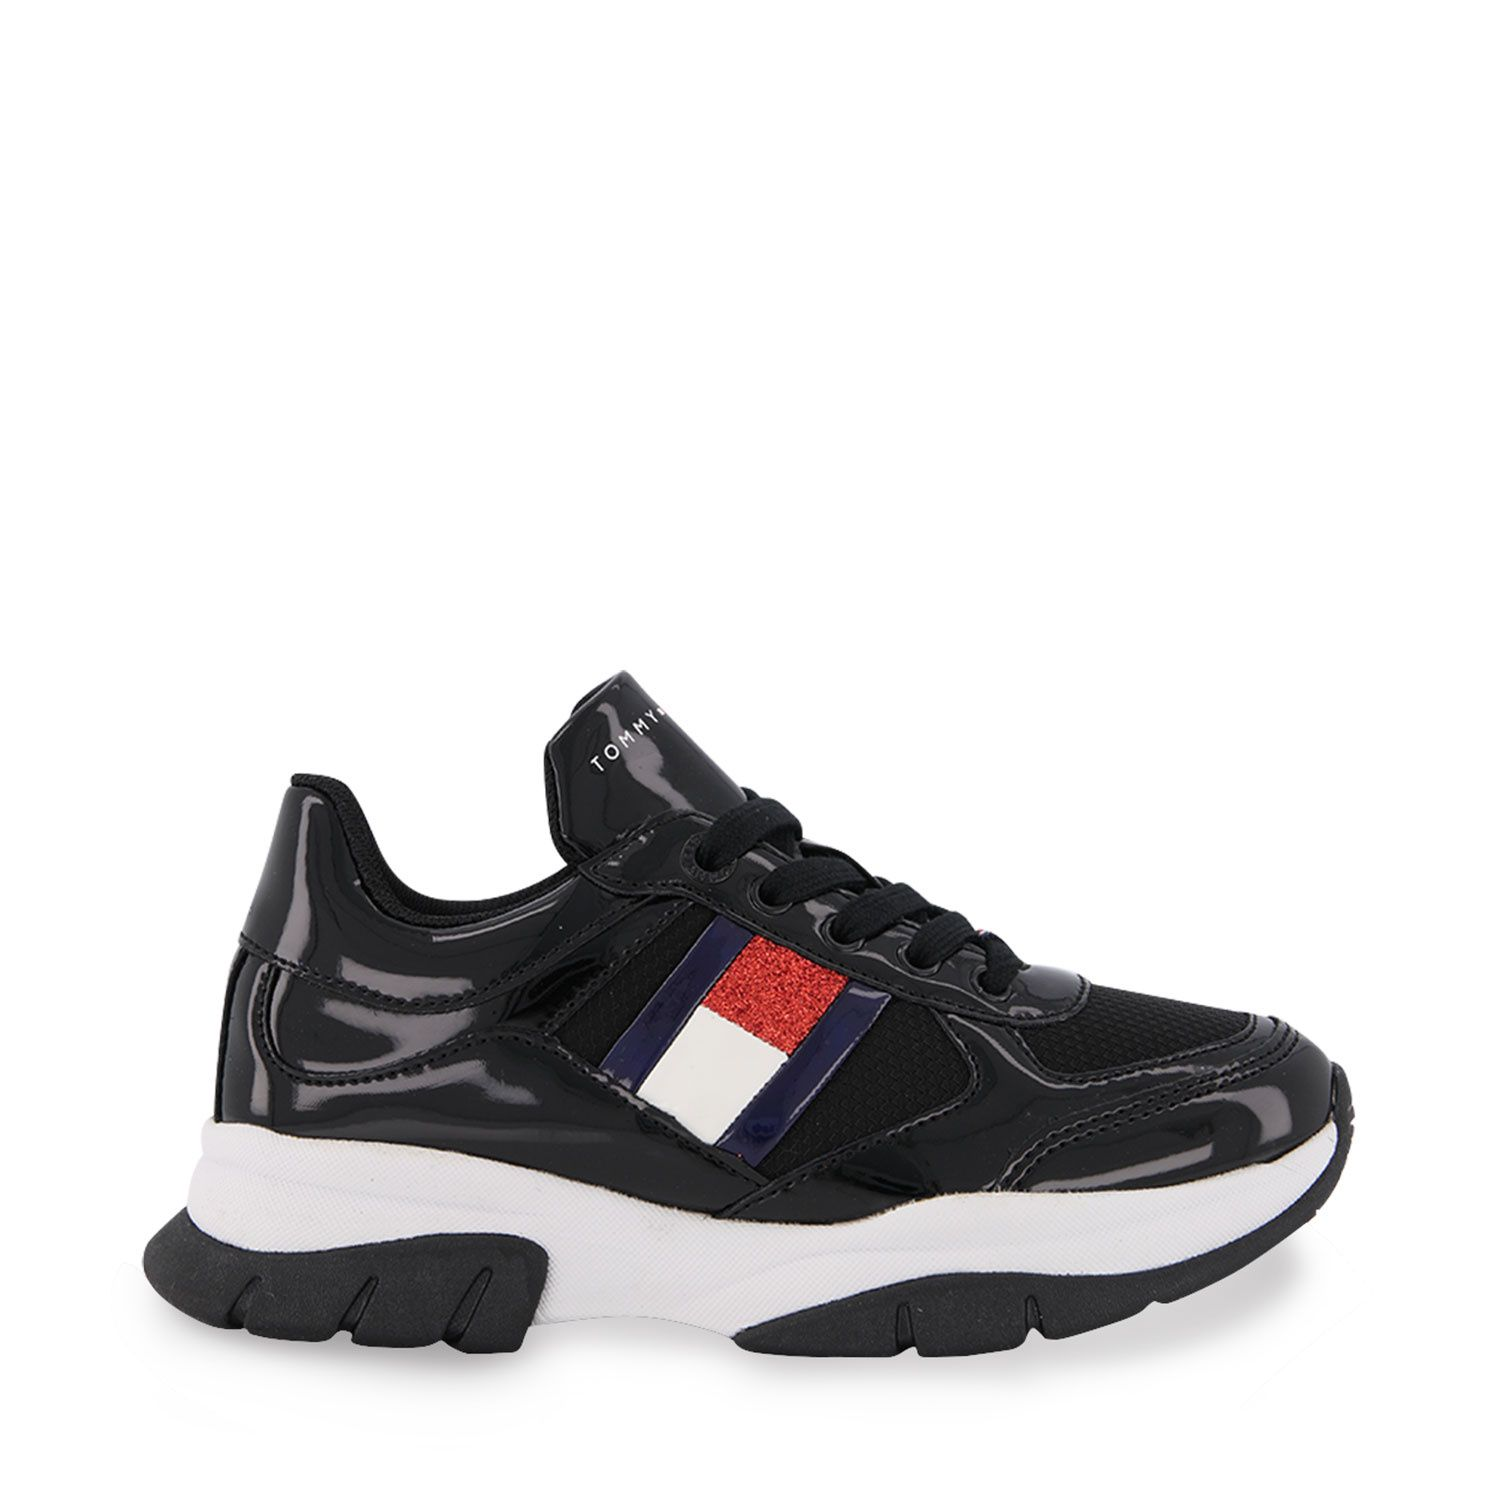 Picture of Tommy Hilfiger 30818 kids sneakers black